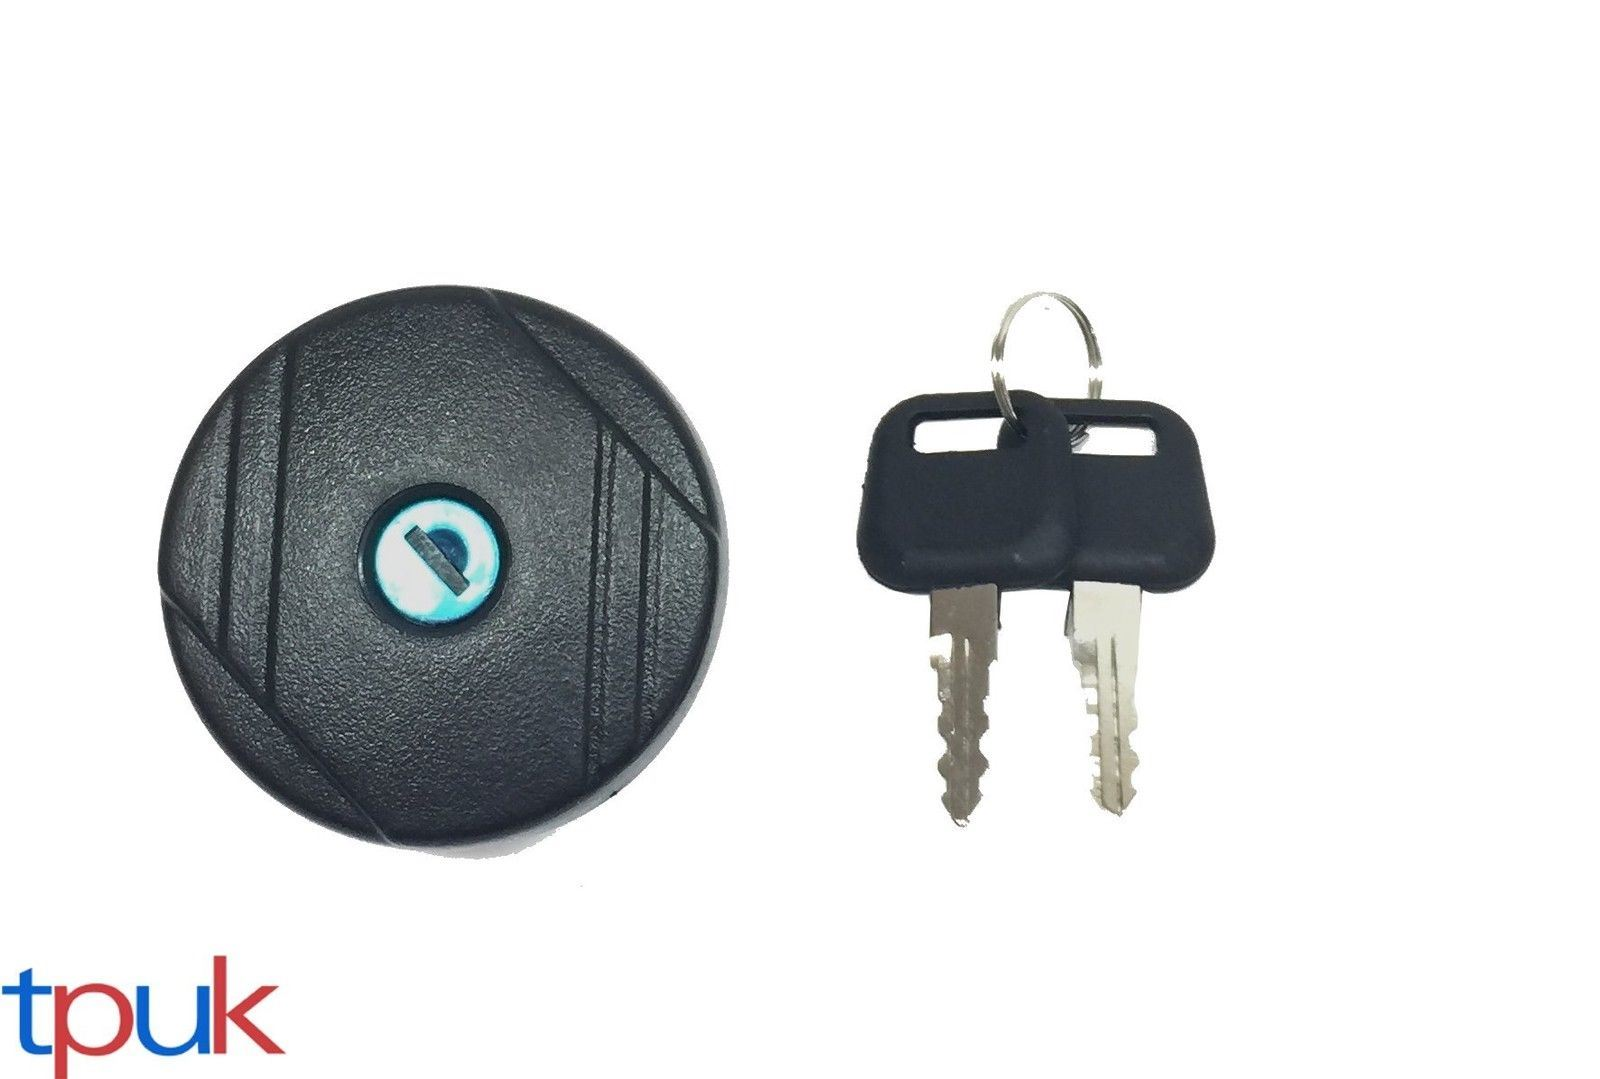 X AUTOHAUX Fuel Petrol Locking Gas Tank Cap W// 2 Key for 00-19 Ford Transit MK6 MK7 4411620